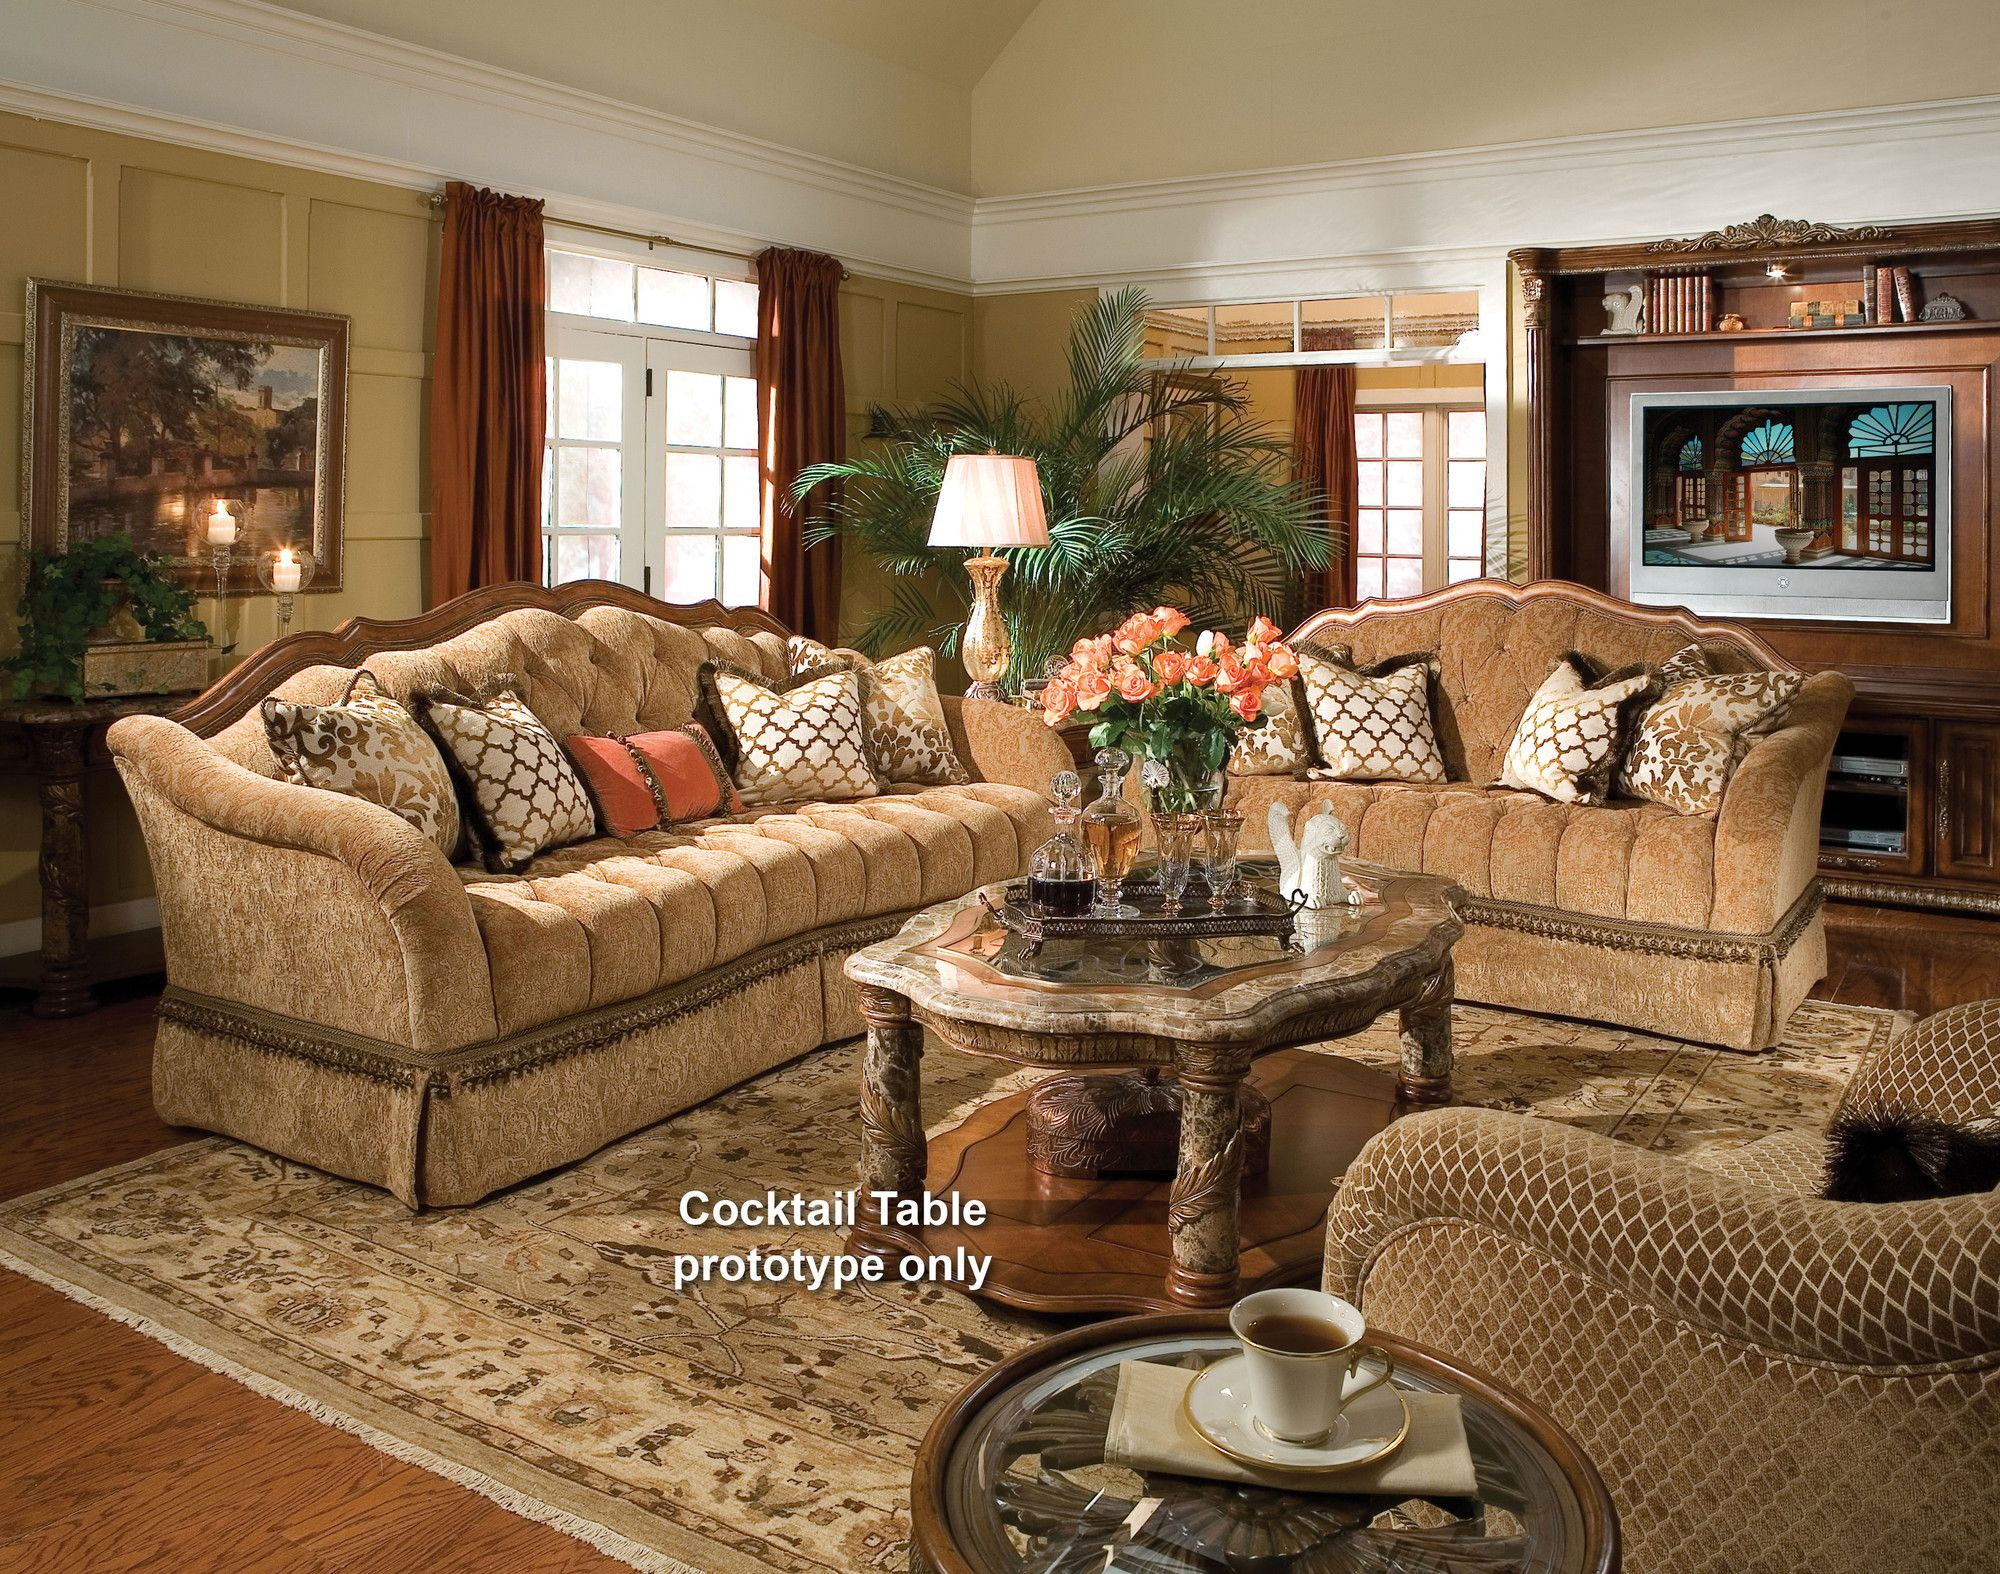 Explore Living Room Furniture, Furniture Decor, And More!